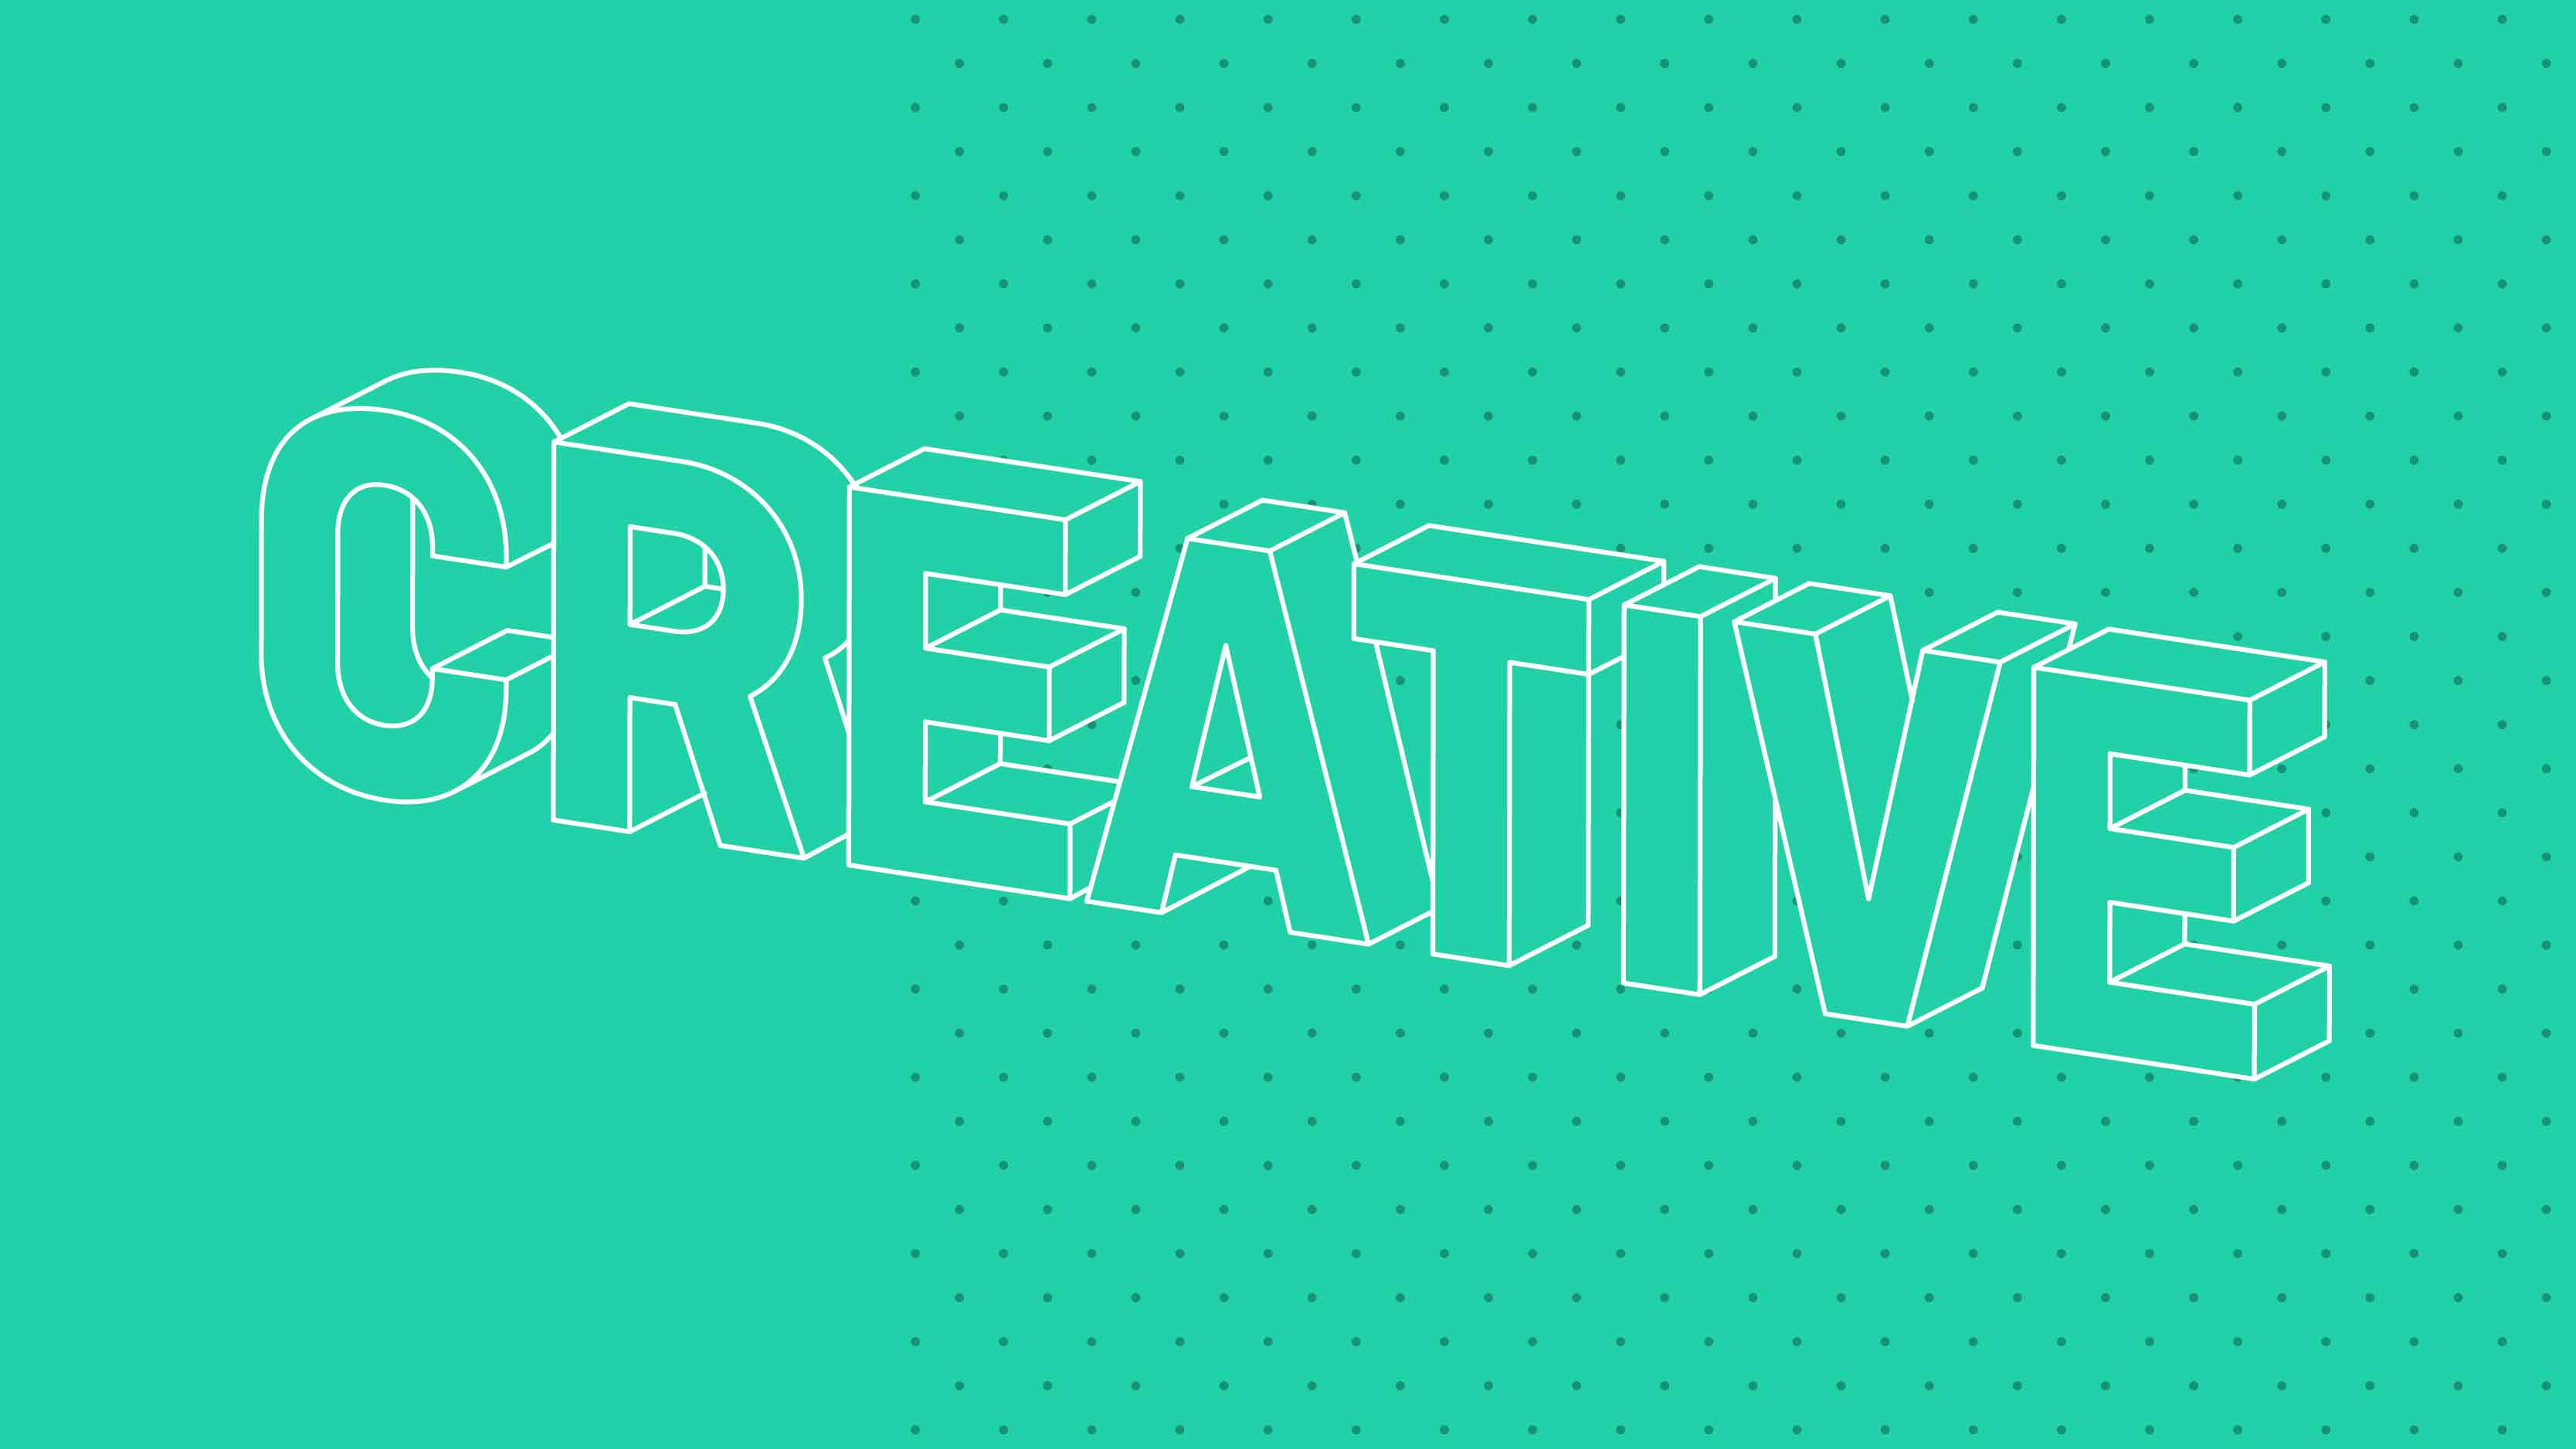 Brand strategy and creative design.